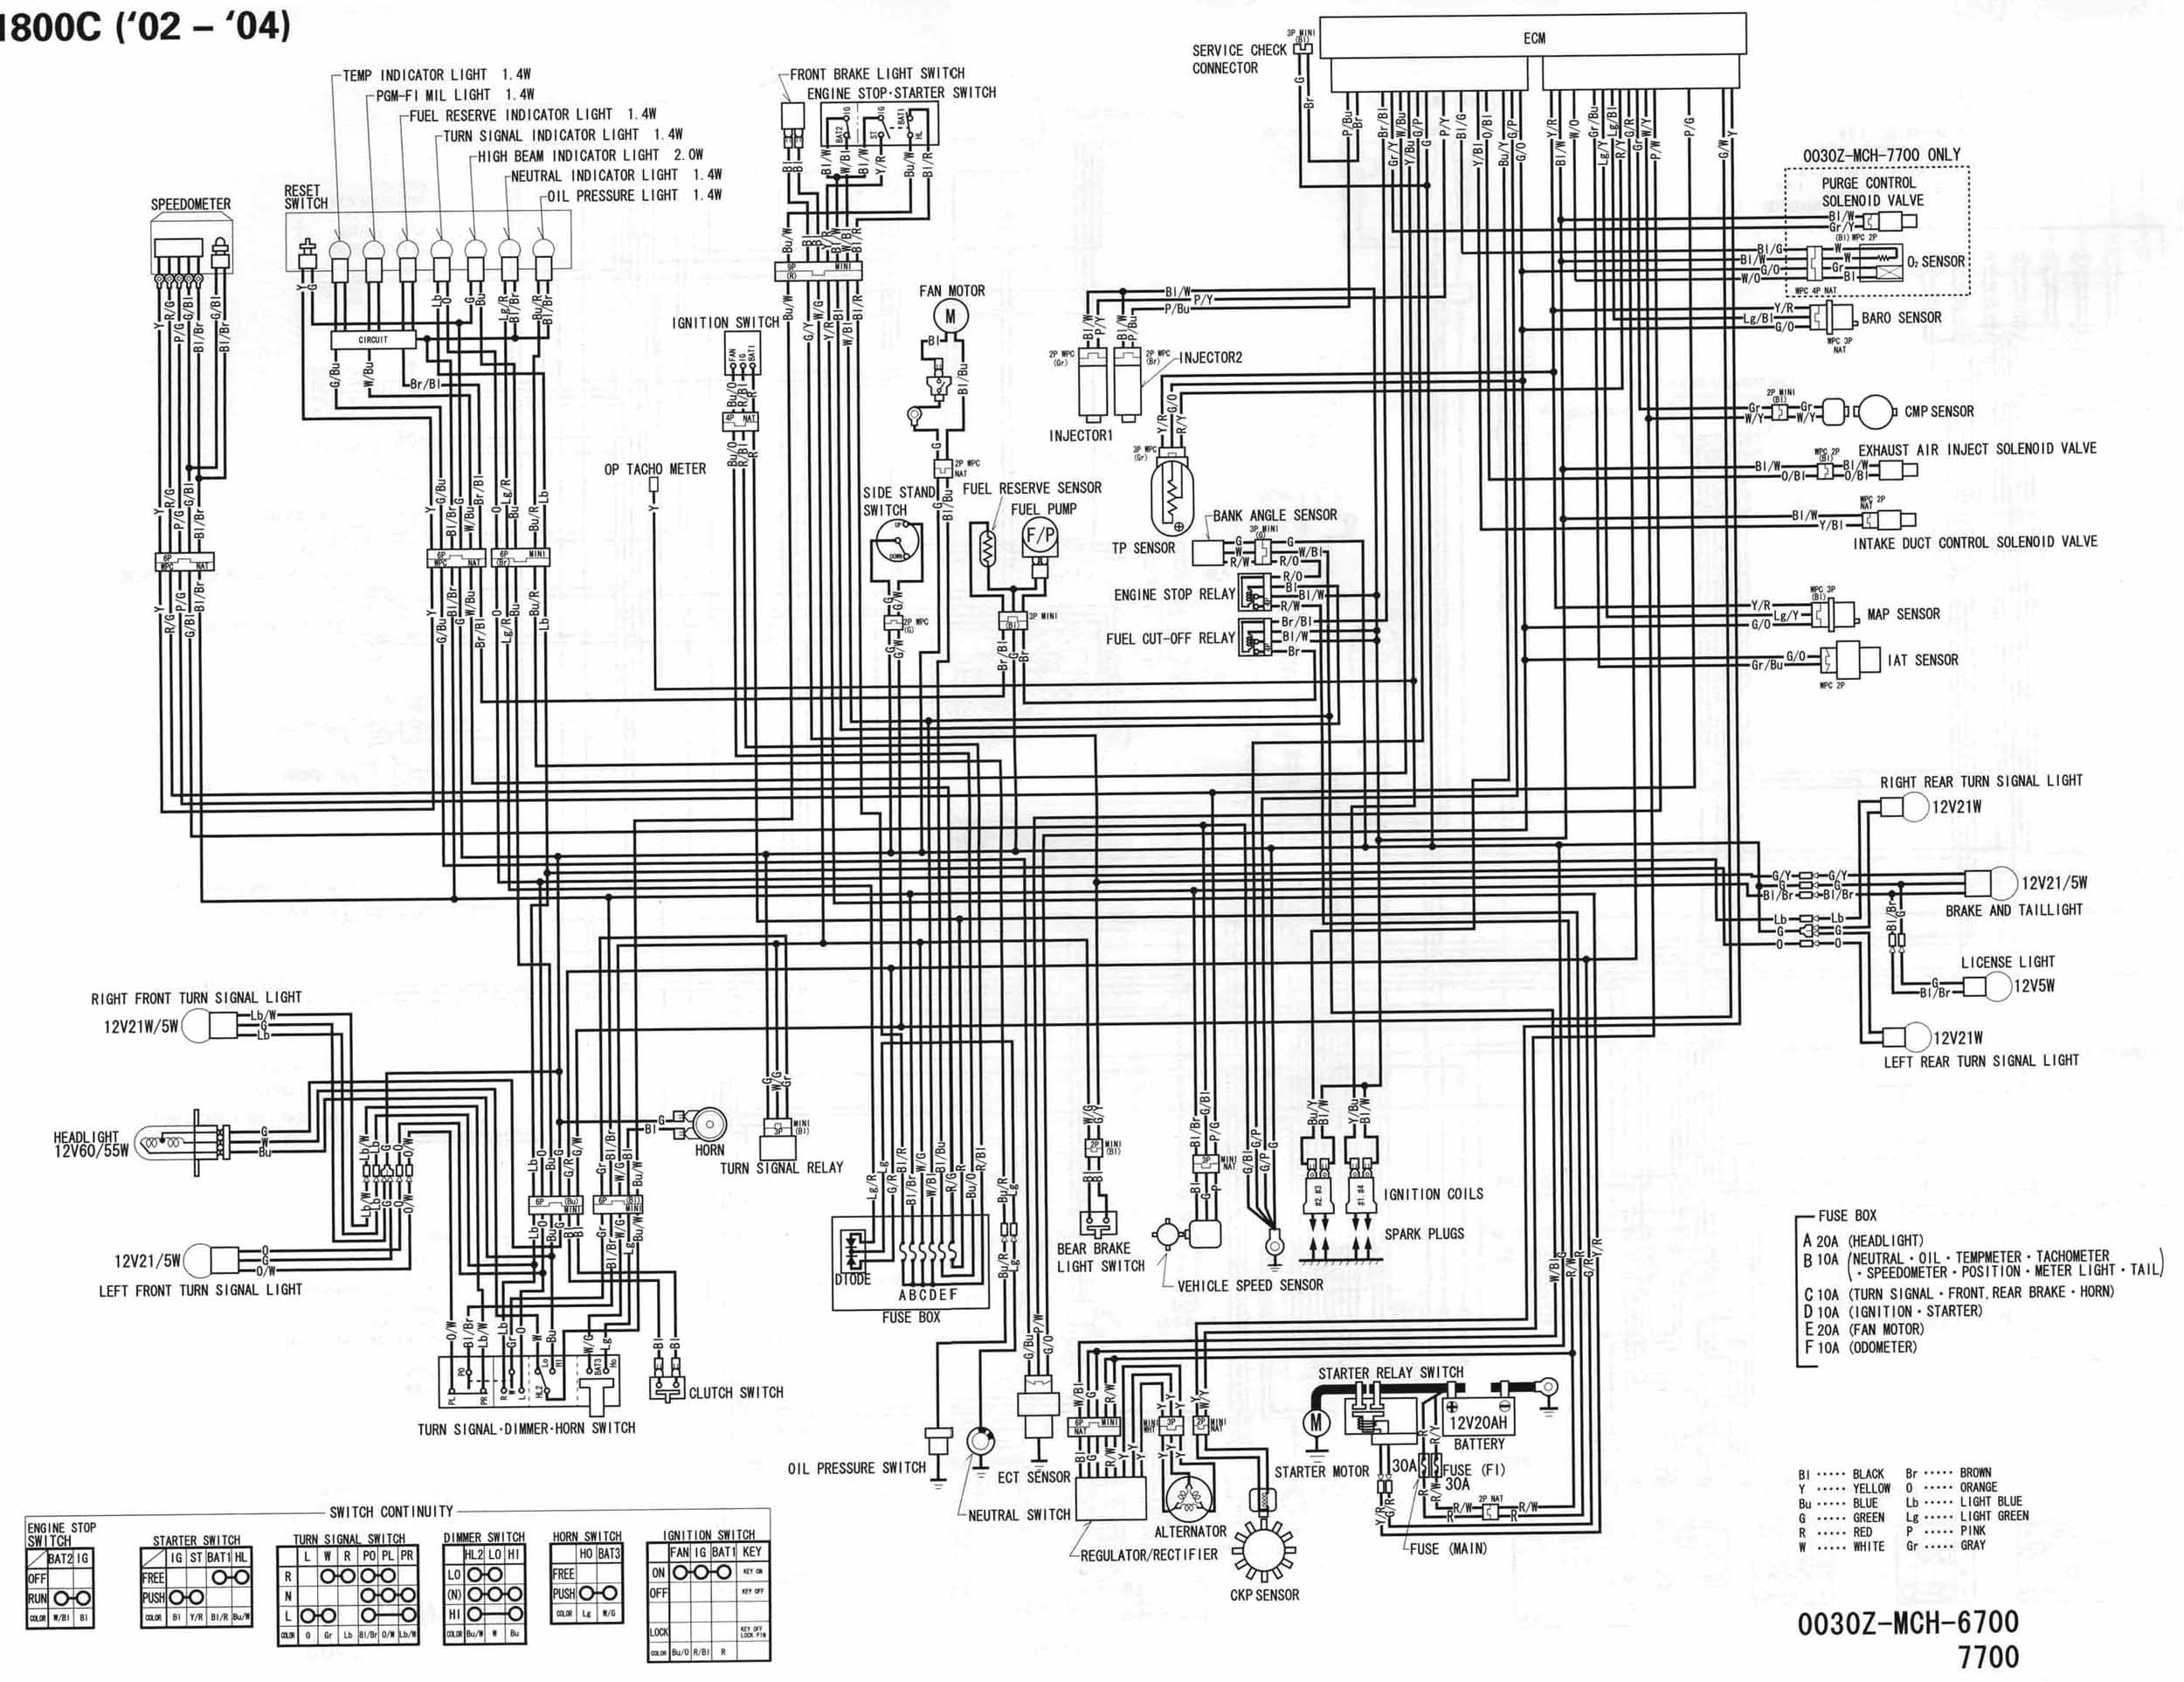 02 04_VTX1800_C_schematic motorcycle wire schematics bareass choppers motorcycle tech pages tachometer wiring diagram for motorcycle at bakdesigns.co